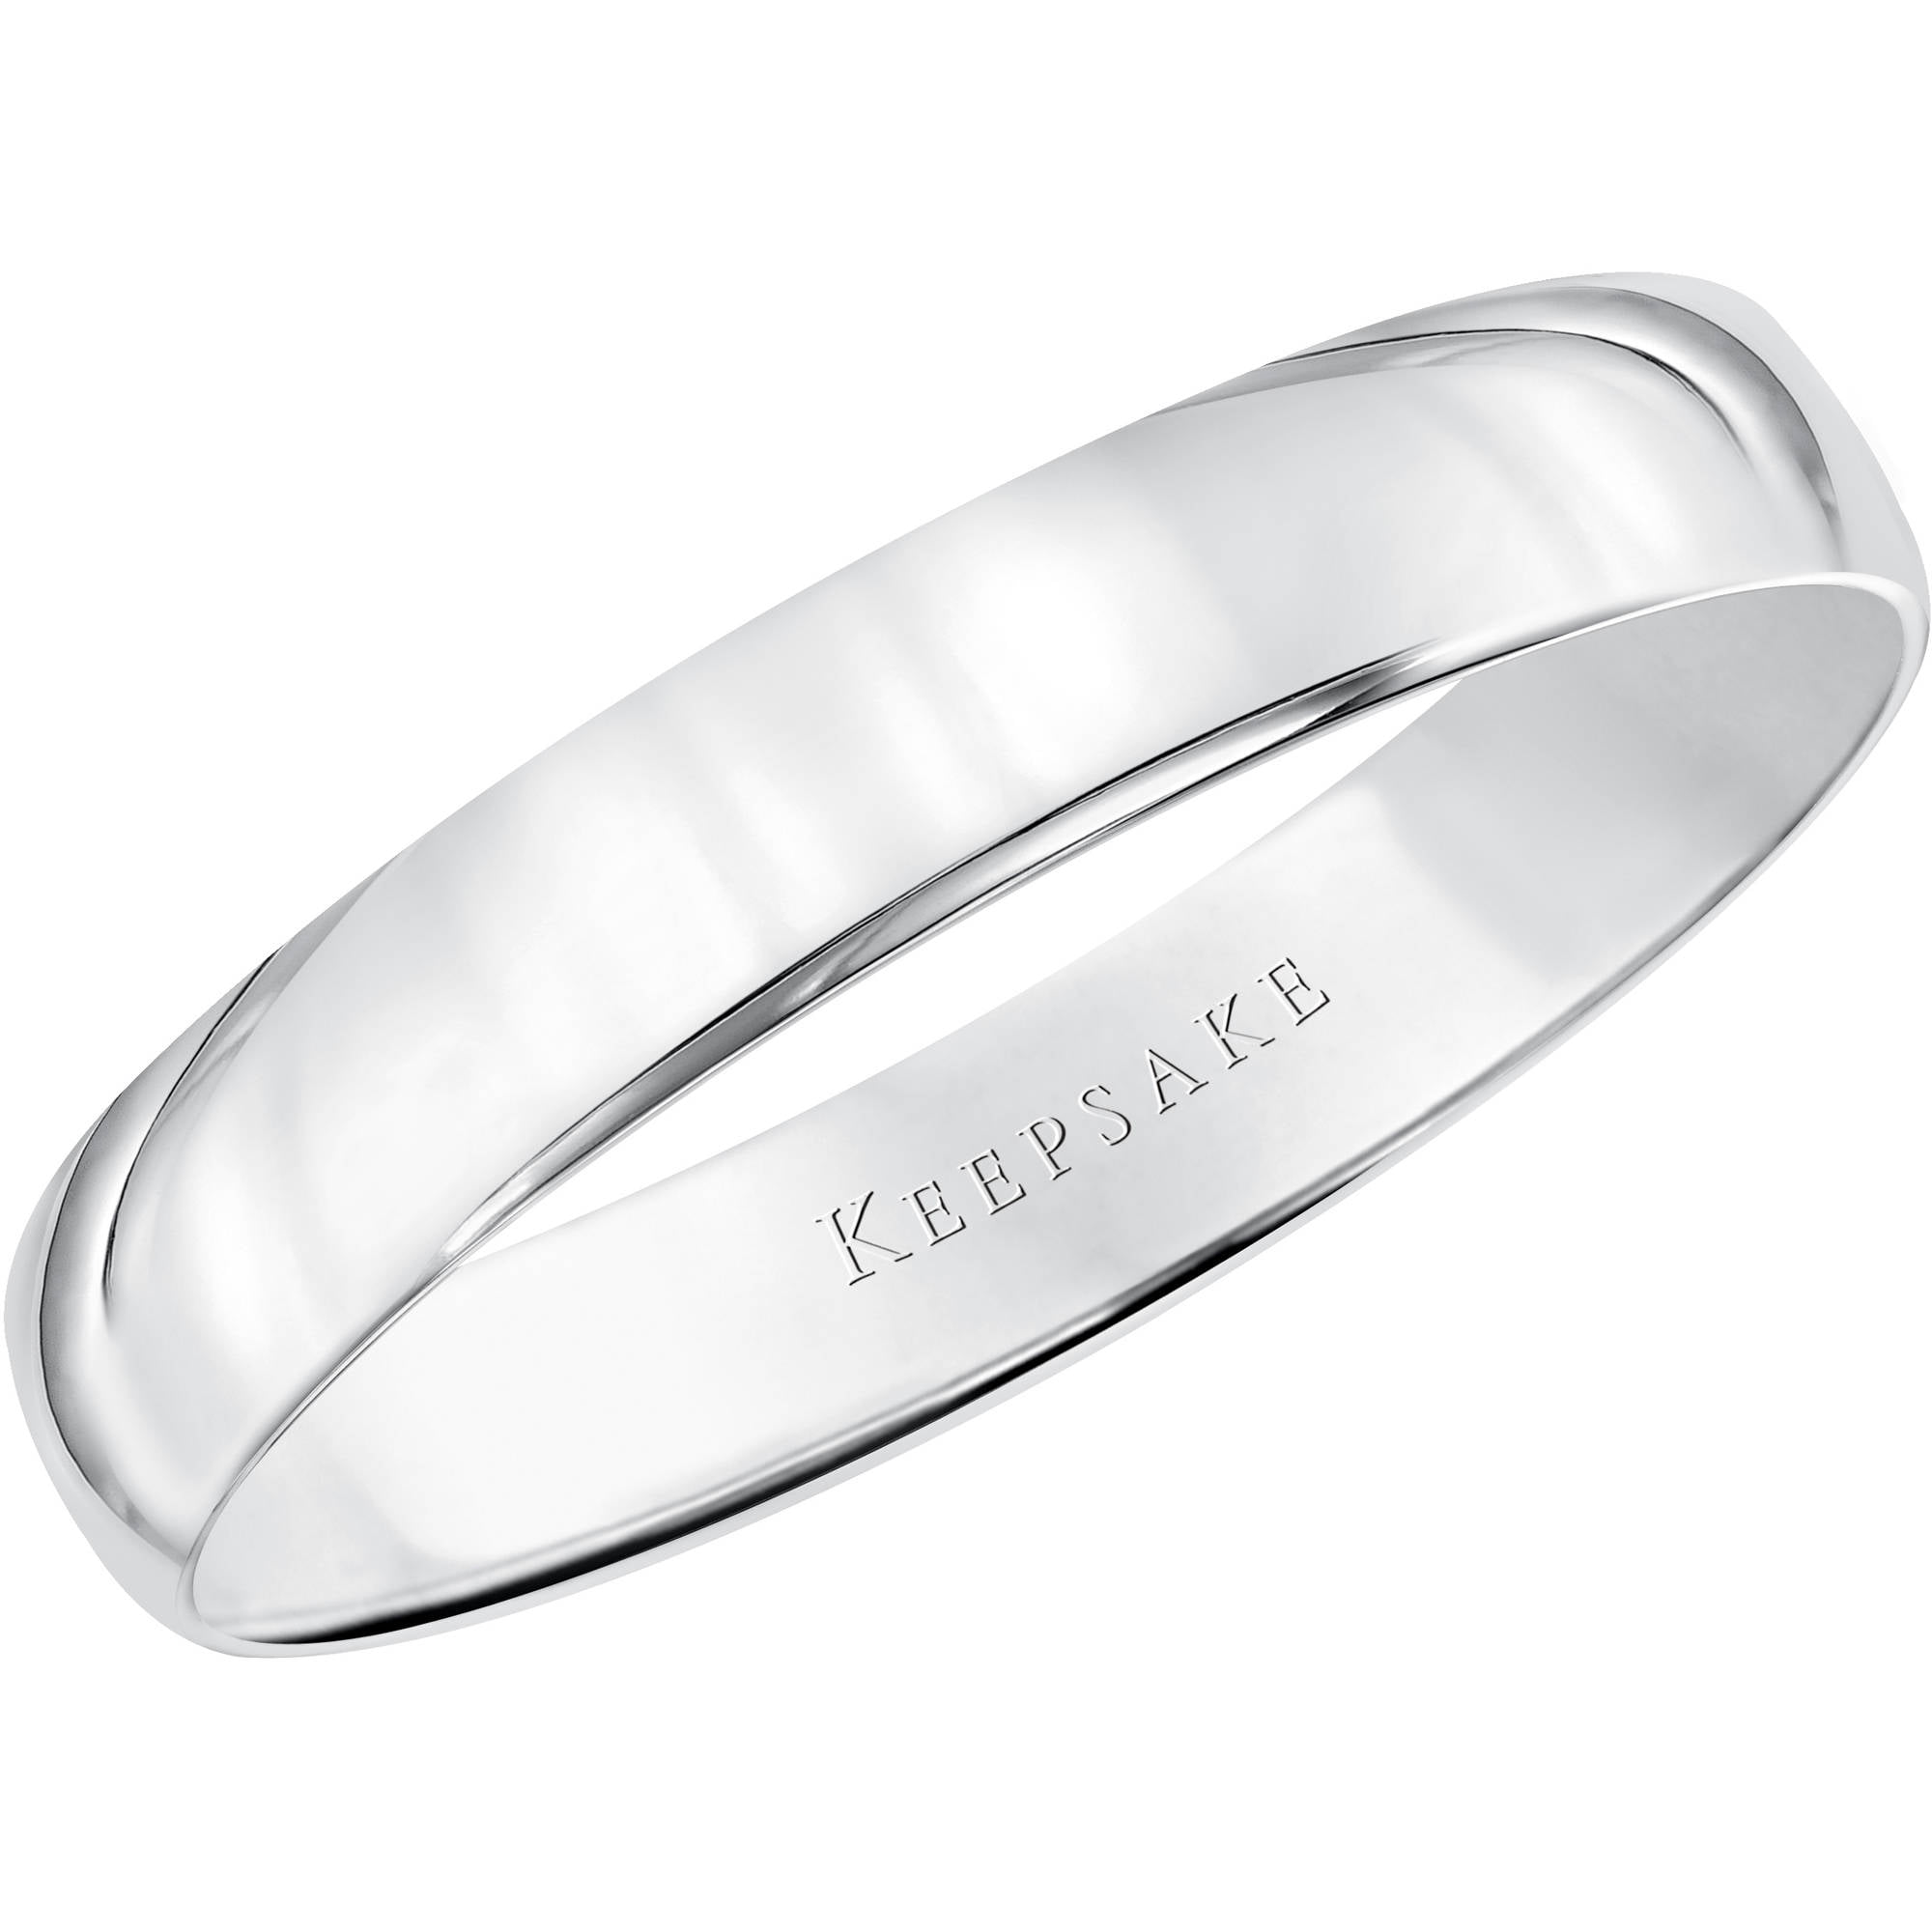 Keepsake 10kt White Gold Wedding Band 4mm Walmartcom